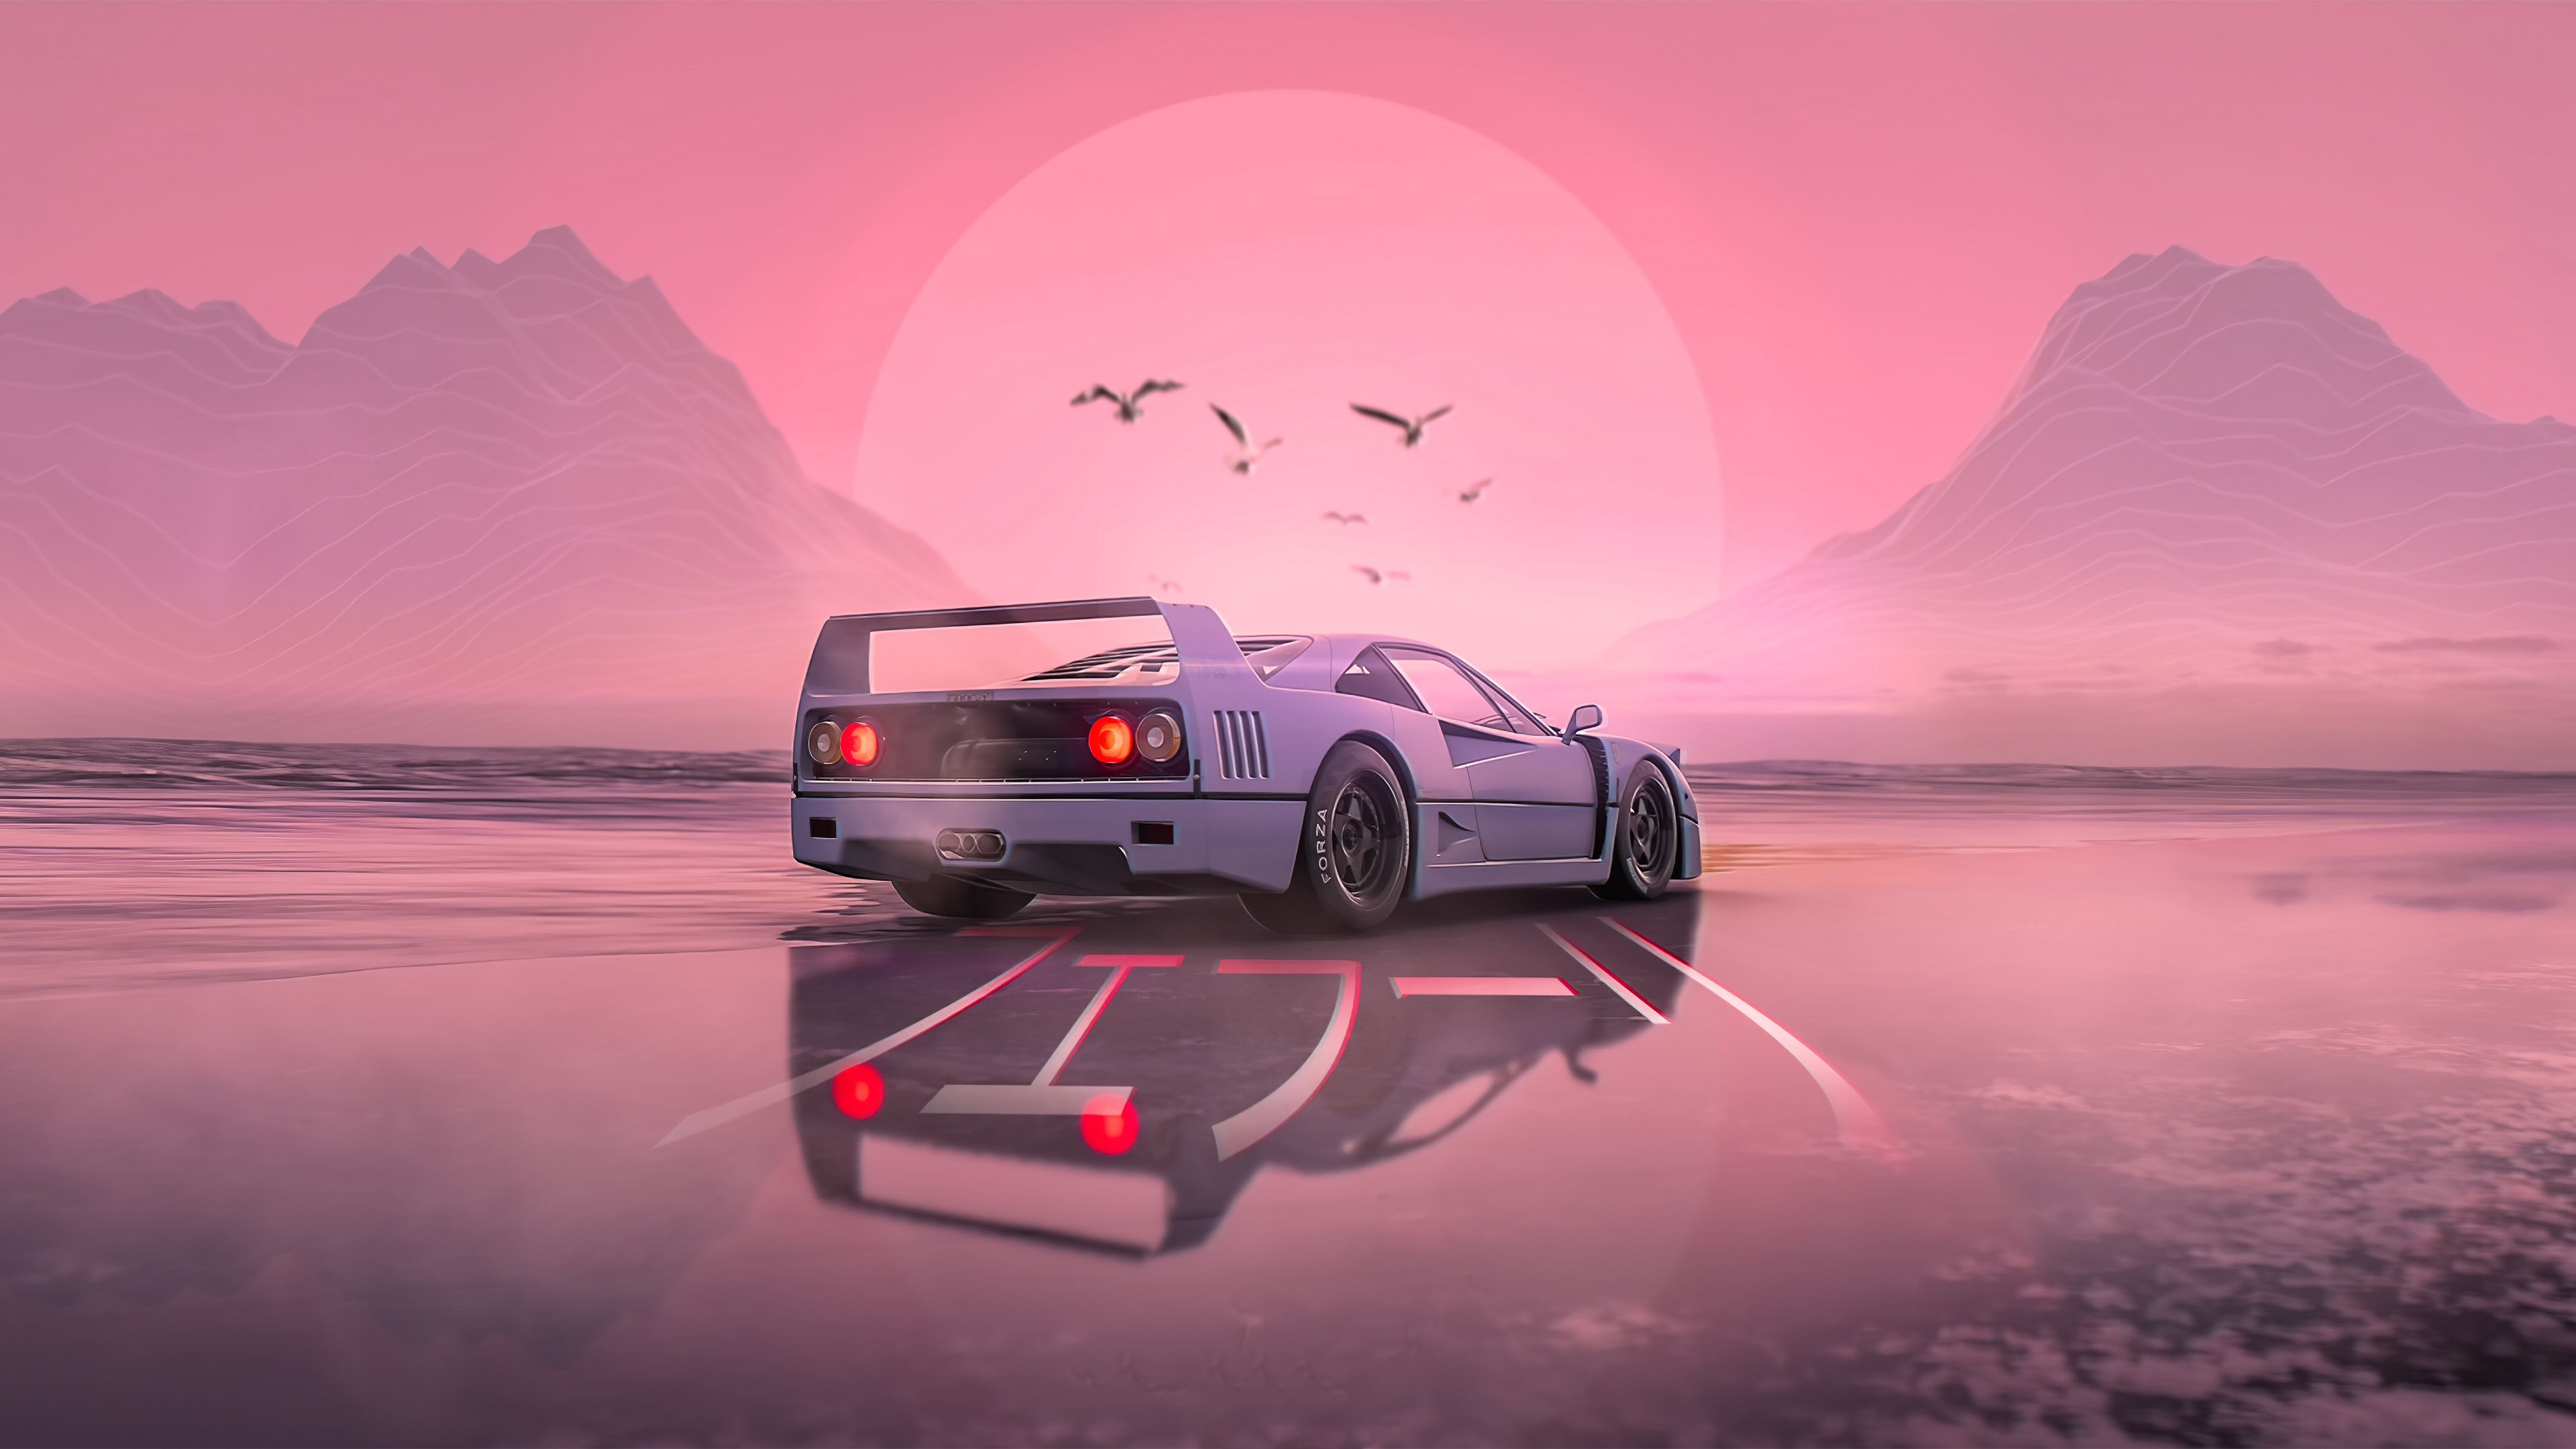 Retrowave F40 3840 X 2160 Aesthetic Desktop Wallpaper Heaven Wallpaper Wallpaper